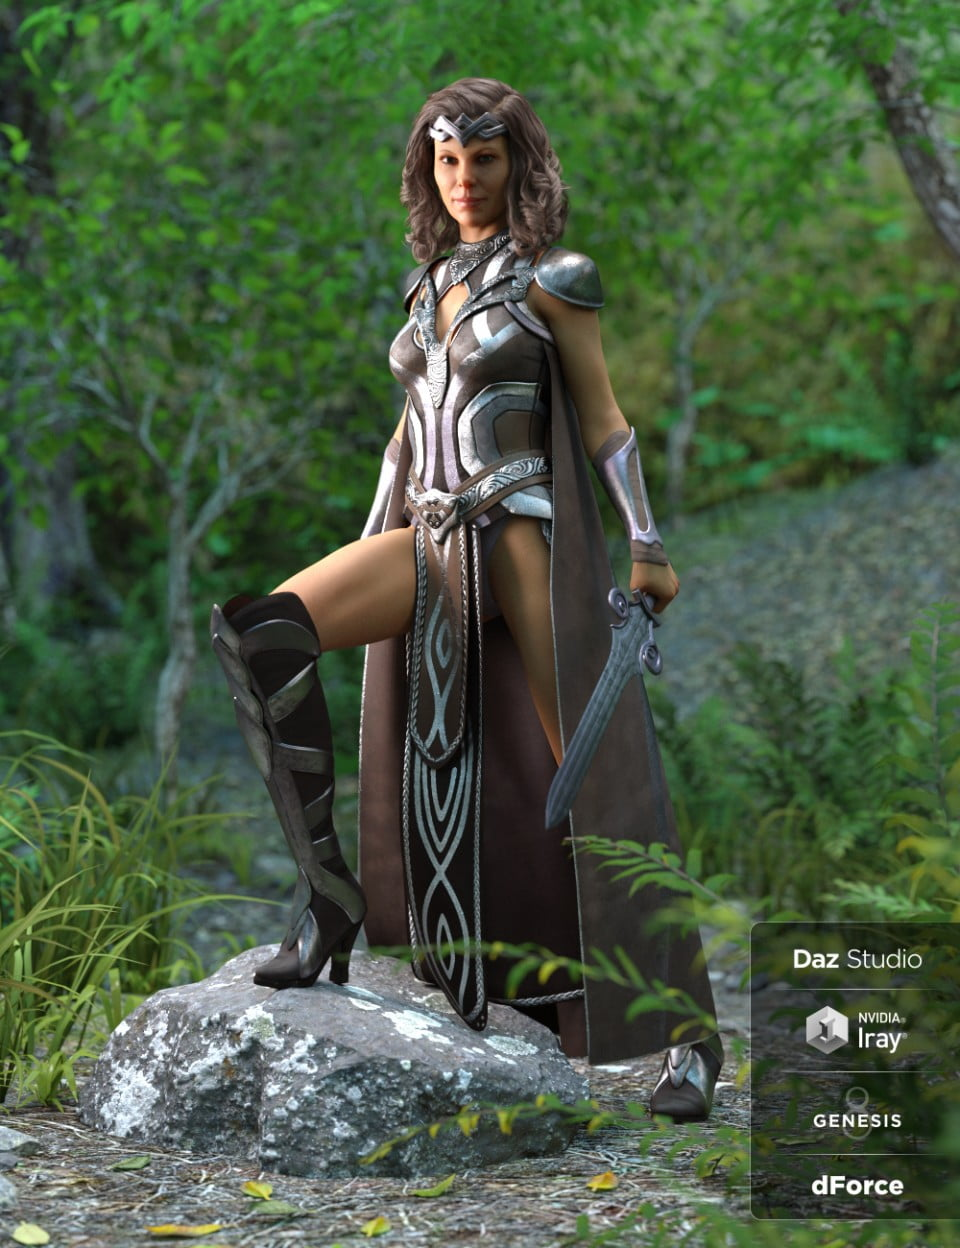 dForce Warrior Queen Outfit for Genesis 8 Female(s)